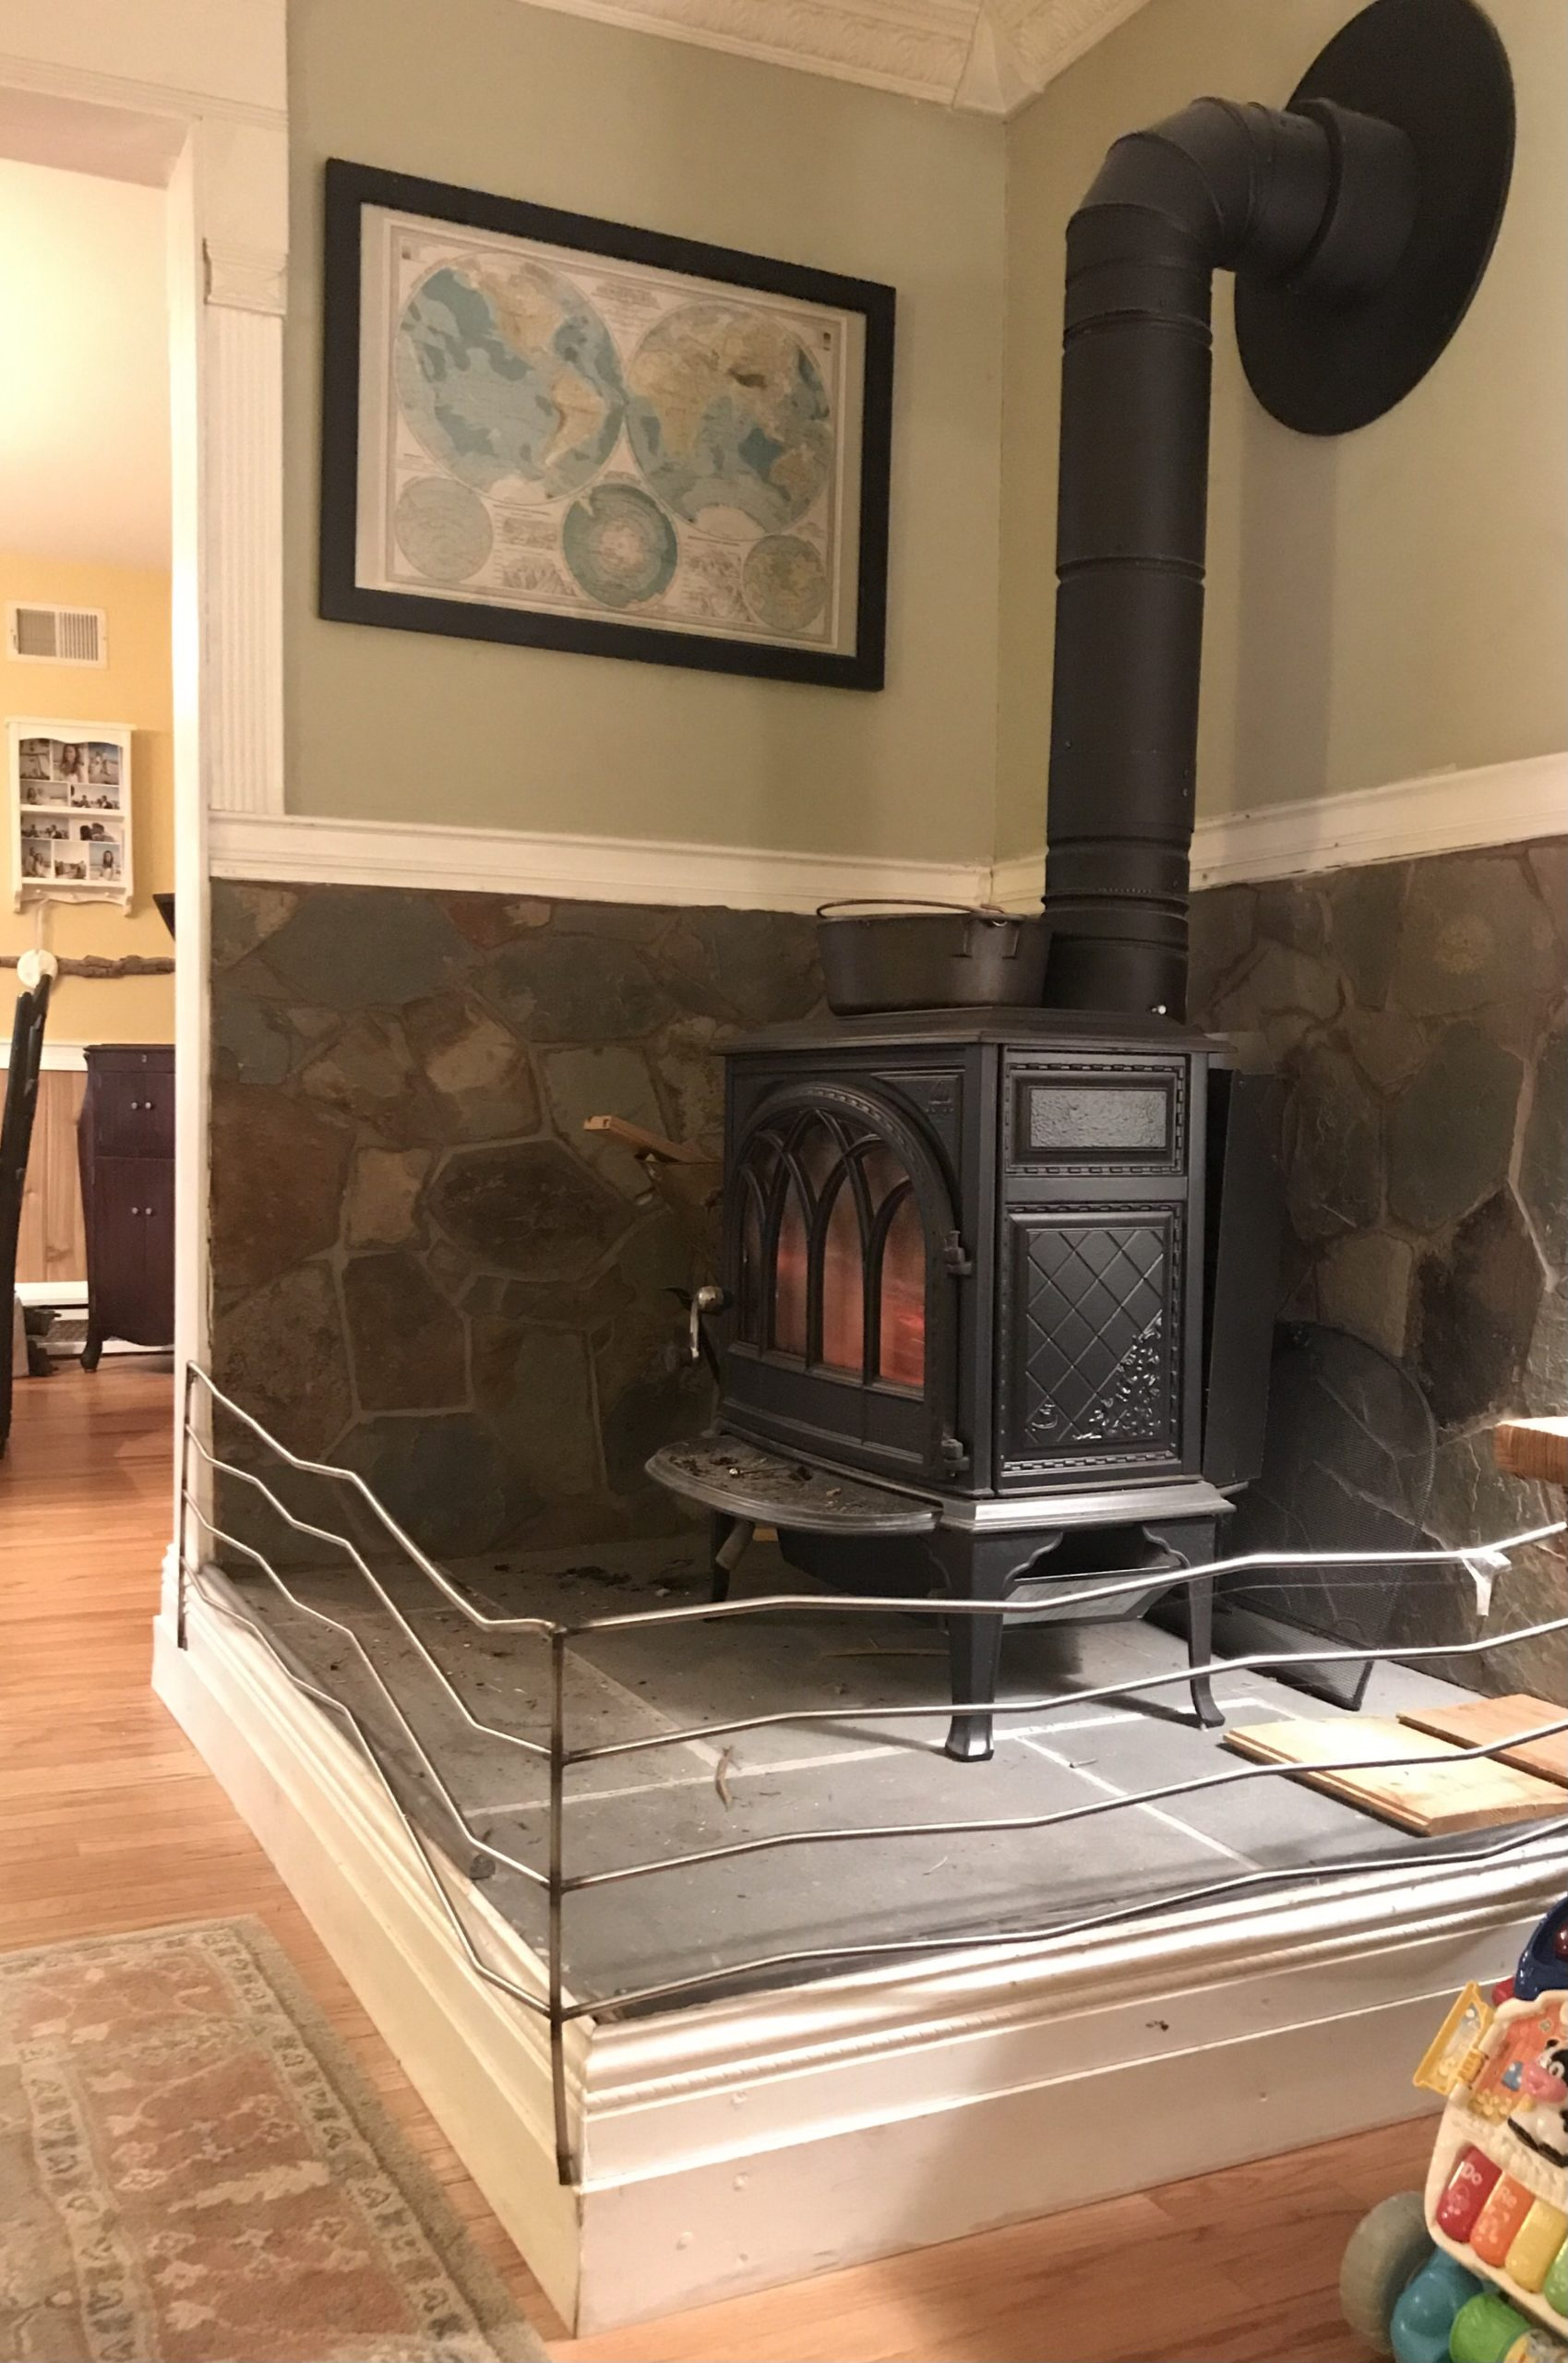 Wood stoves sometimes require glass cleaning as well, and it's important not to burn pine wood.